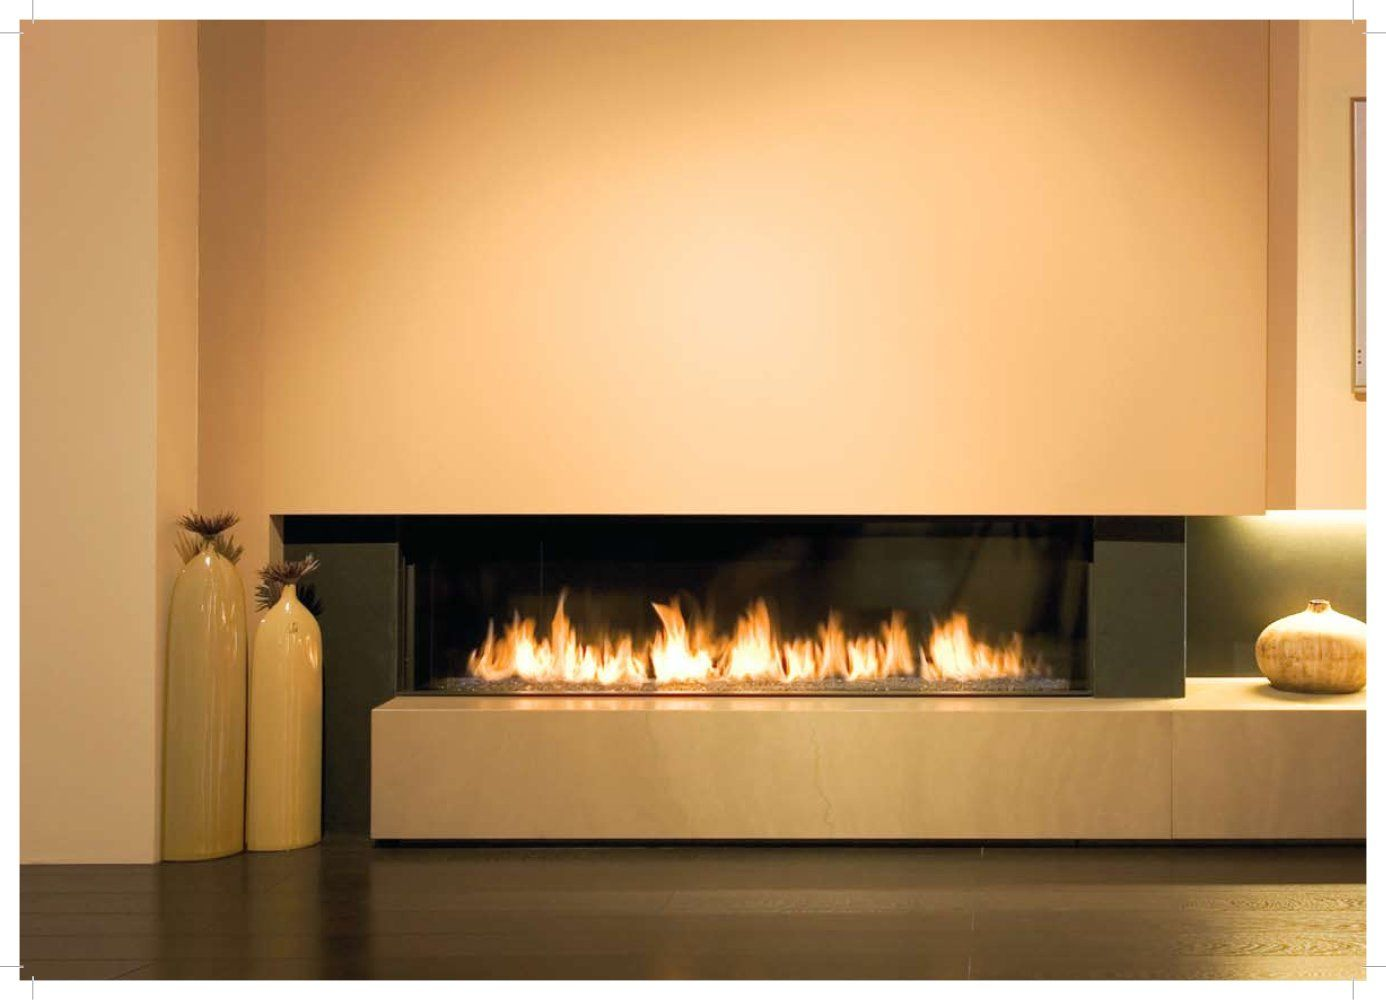 modern fireplace inserts. Wood Burning Fireplace Inserts Are Especially Designed Heating Units That Can Directly Be Placed Inside Or Modern